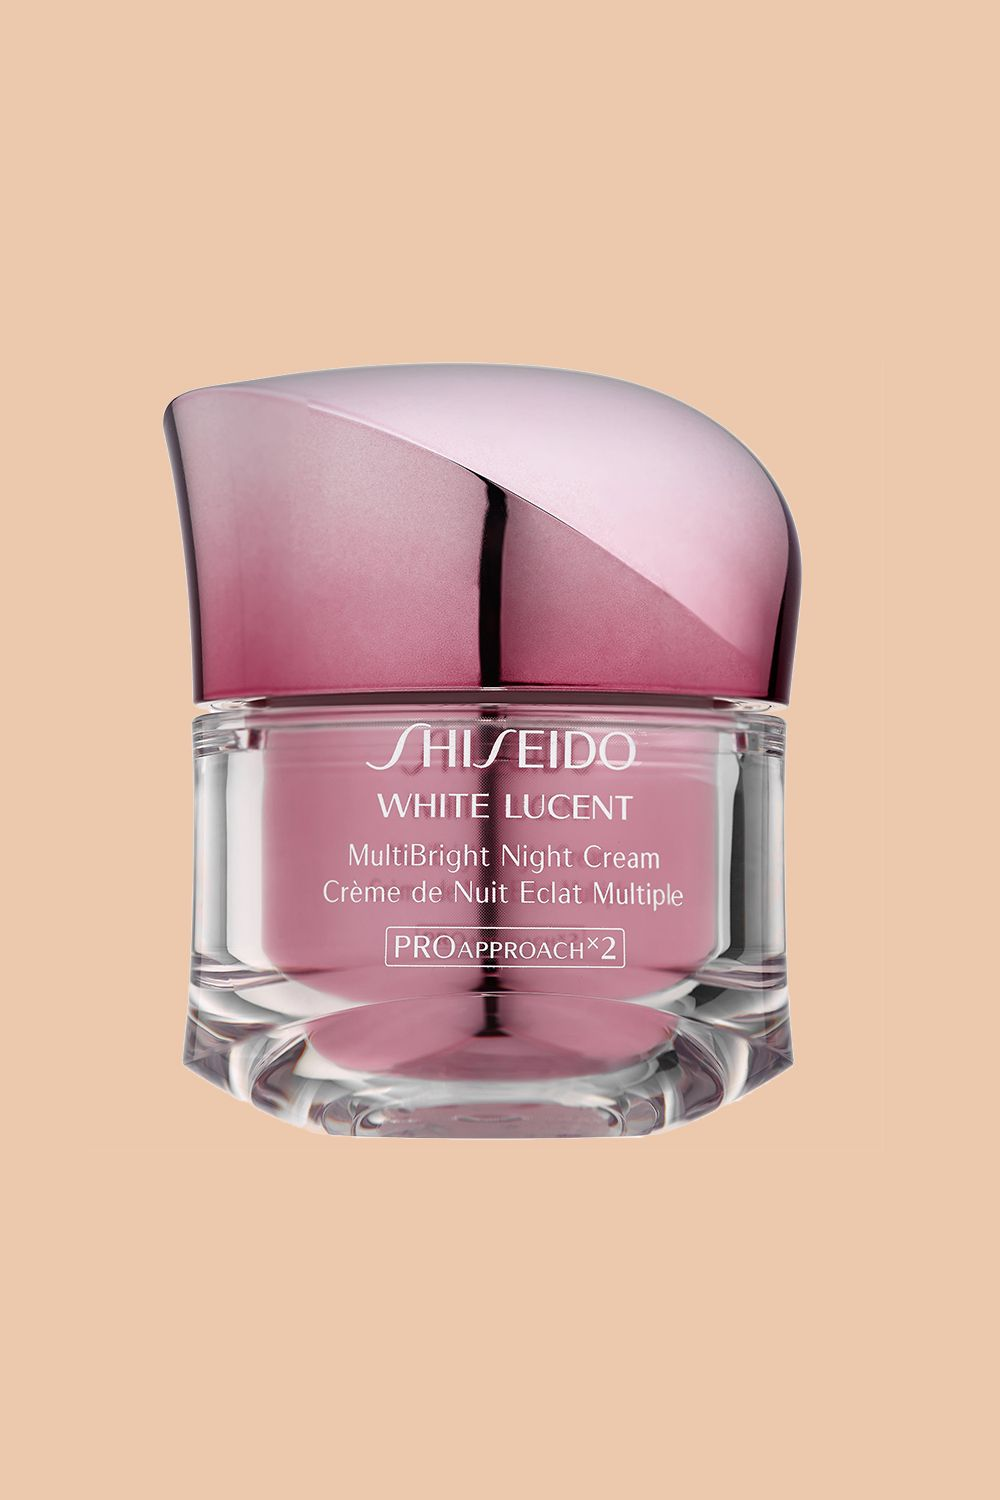 "<p>If you're preferable to a while-you-sleep treatment, this brightening cream, which can be worn like a mask, capitalizes on the skin's nighttime cycle to address marks. The magic ingredient? Sakura from Japanese cherry blossoms, which helps minimize the appearance of discolored spots while brightening the complexion all over.</p><p><strong><br></strong></p><p><strong>What one woman said:</strong> ""I don't ever write reviews for products. But this cream has helped me fade my hyper pigmentation left behind from acne and brightens my complexion. When I see my bare face in the mirror, I look radiant and my skin feels so smooth, soft, and silky. I can't live without it.""—<span class=""BVRRValue BVRRUserNickname""><a name=""BV_TrackingTag_Review_Display_ReadAllReviews_2392402215"" data-bvtrack=""eName:ProfileLink"" href=""http://reviews.sephora.com/8723abredes/2392402215/profile.htm"">Danielatech</a></span></p><p><br></p><p>Shiseido White Lucent MultiBright Night Cream, $90; <a href=""http://bit.ly/2bkOgDB"" target=""_blank"">sephora.com</a>.</p>"